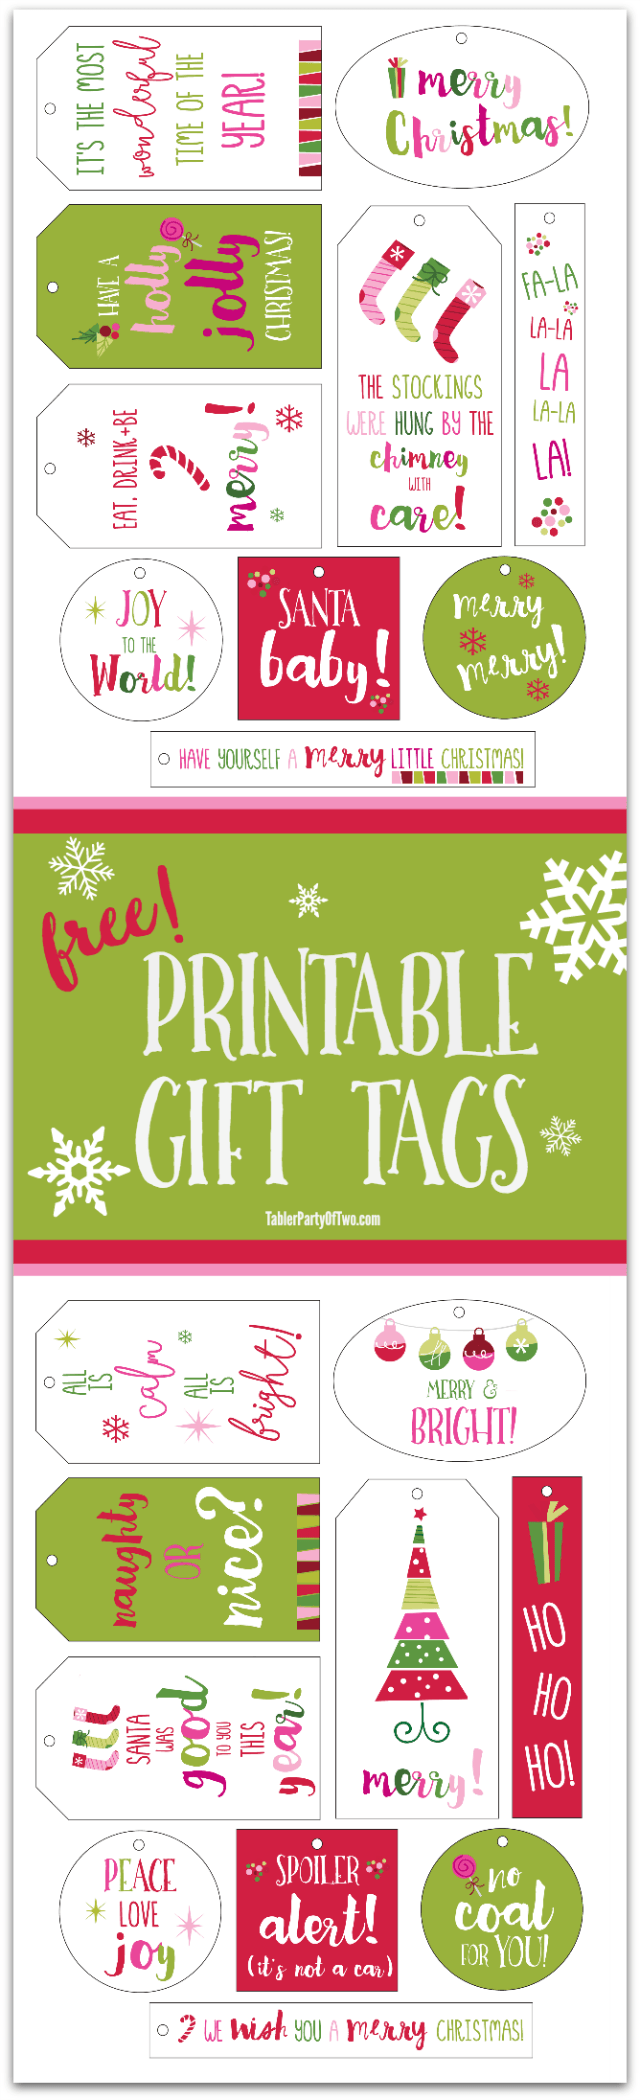 Free Printable Gift Cards, Collection 2 | Geschenkanhänger, Wrapping ...